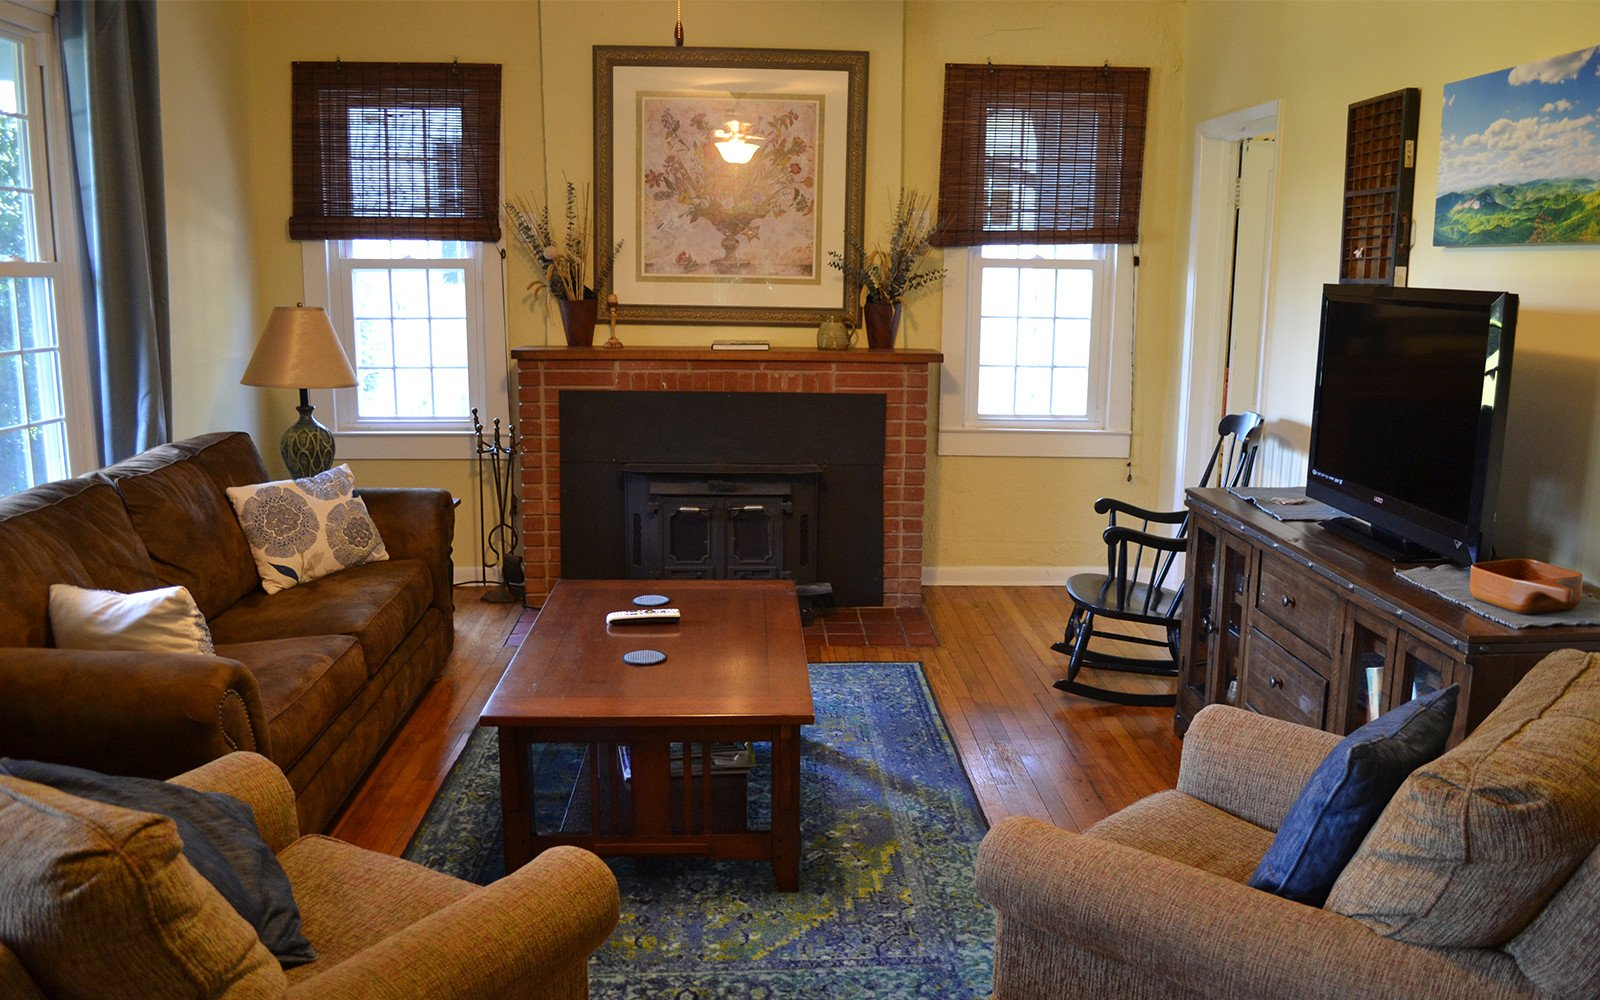 Franklin-Street-house-living-room-with-fireplace